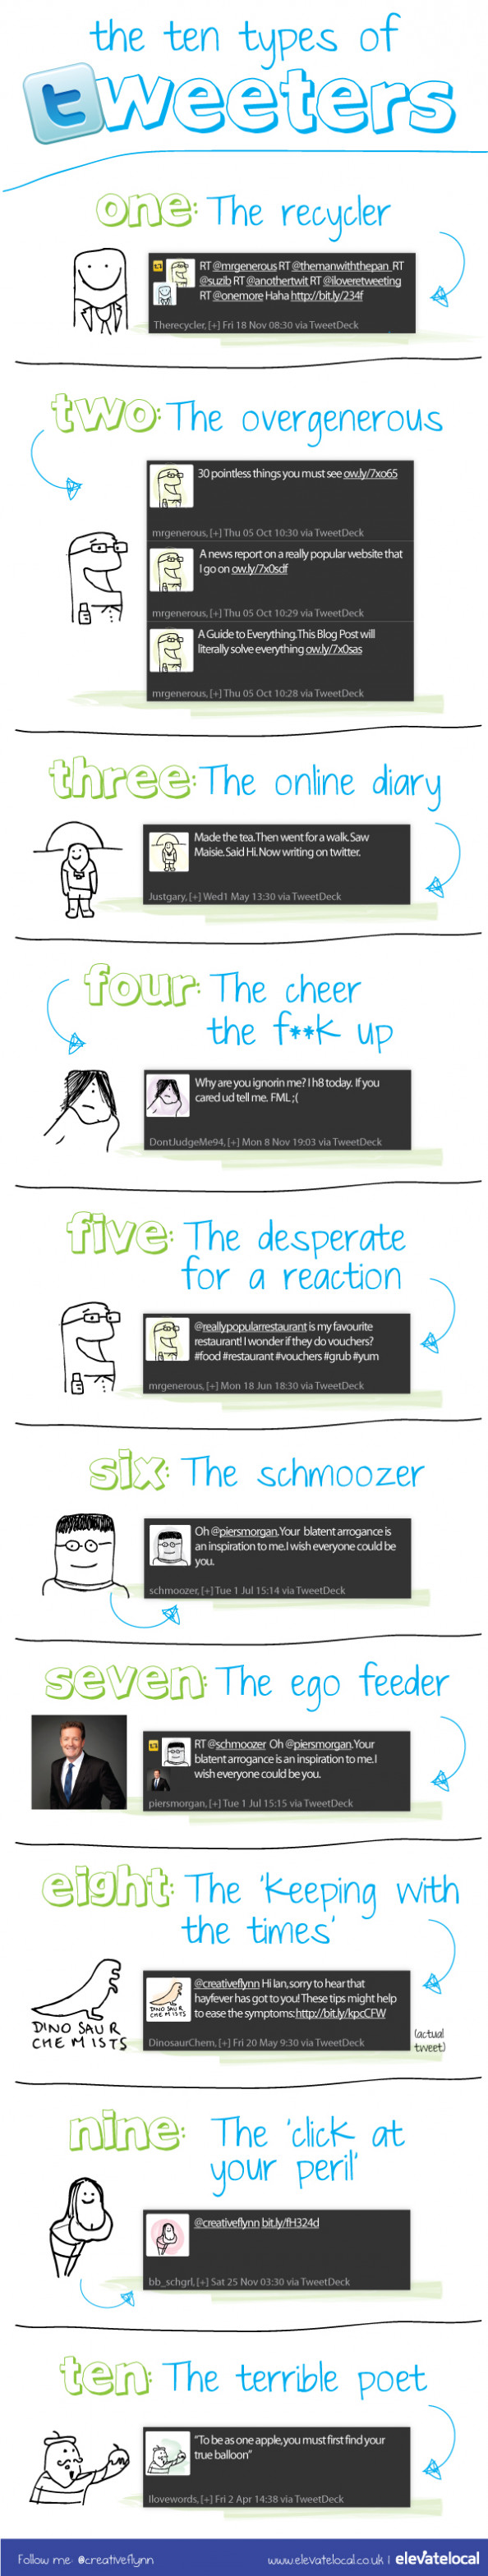 The Ten Types of Tweeters Infographic